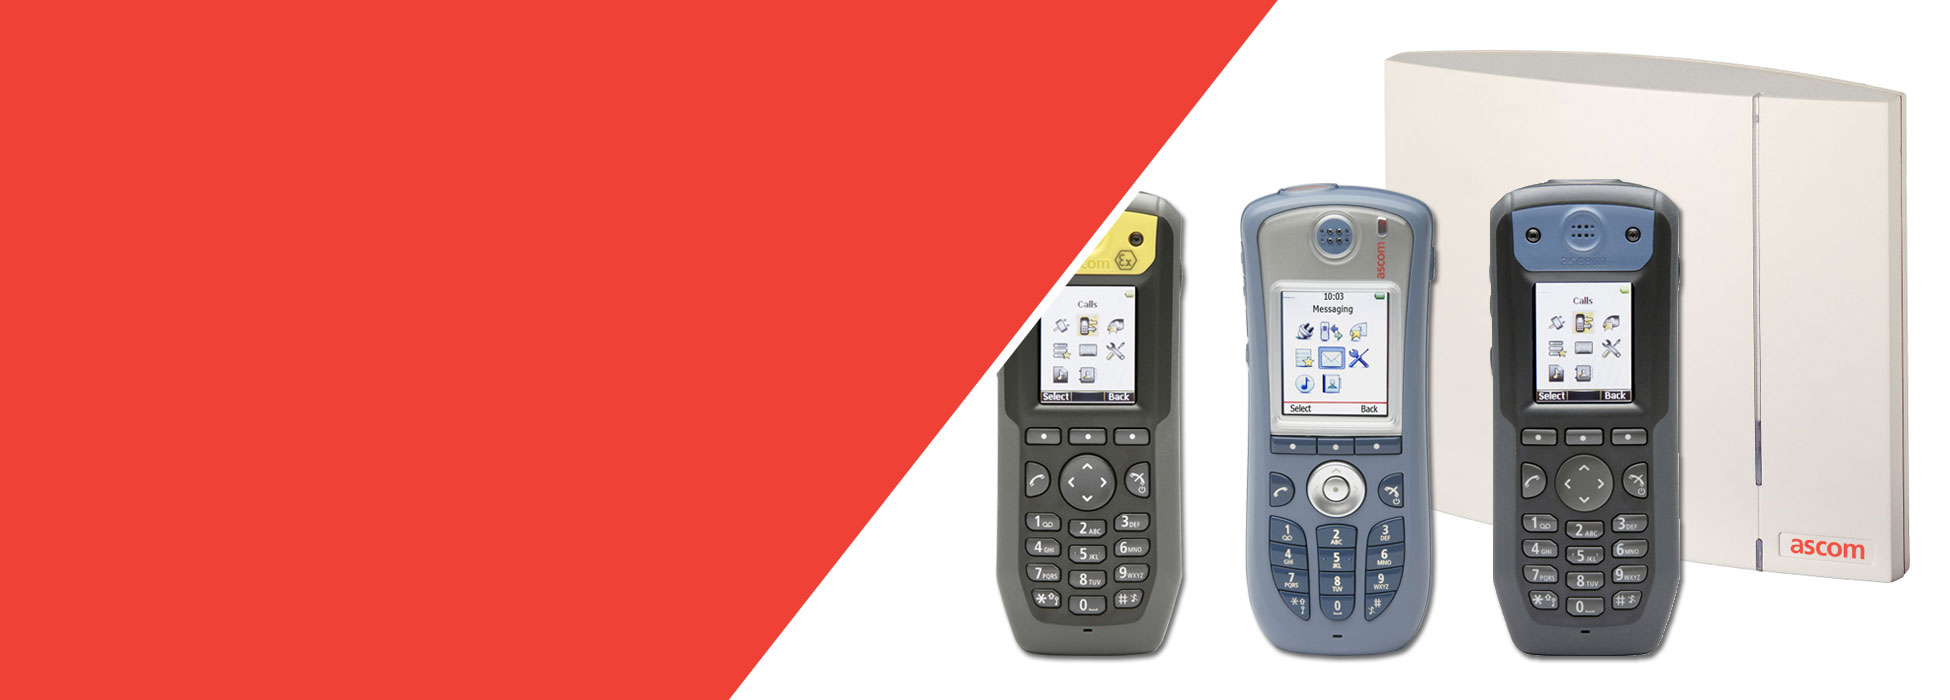 Ascom Sales and Support